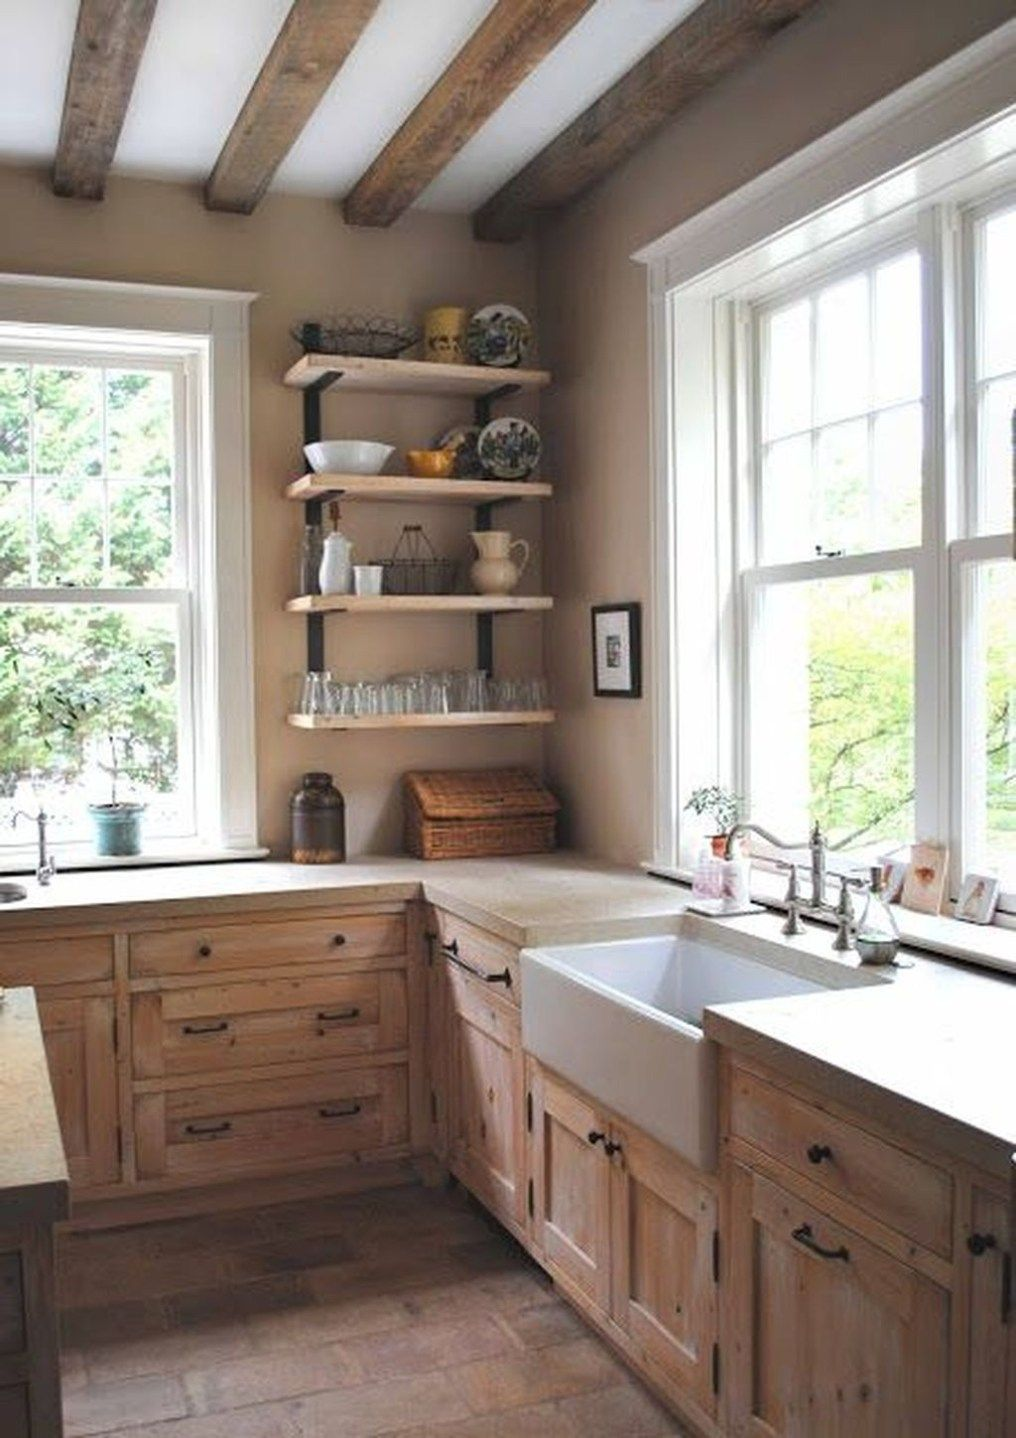 38 Totally Difference Farmhouse Kitchen Cabinets #rustickitchendesigns